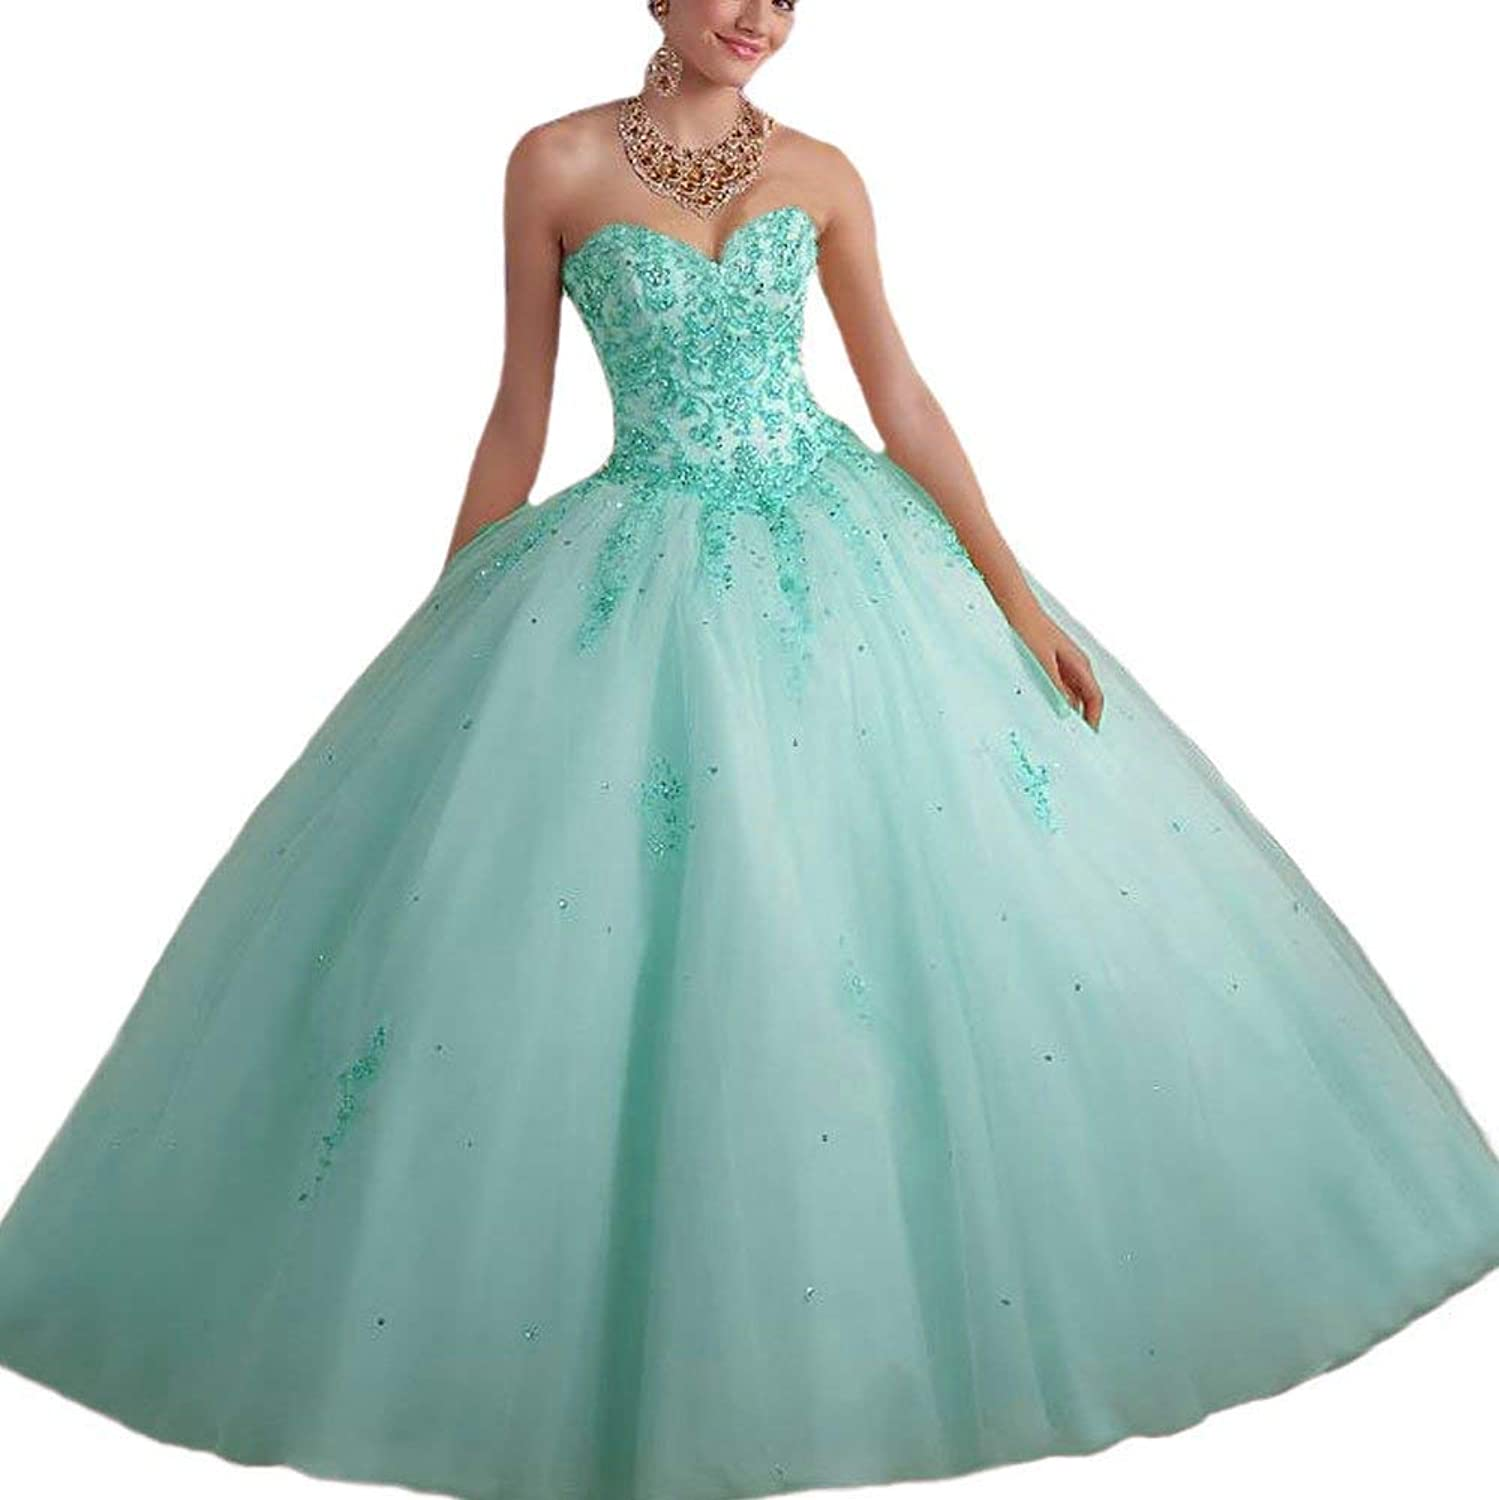 CharmingBridal Beaded Applique Ball Gown Long Prom Quinceanera Dresses